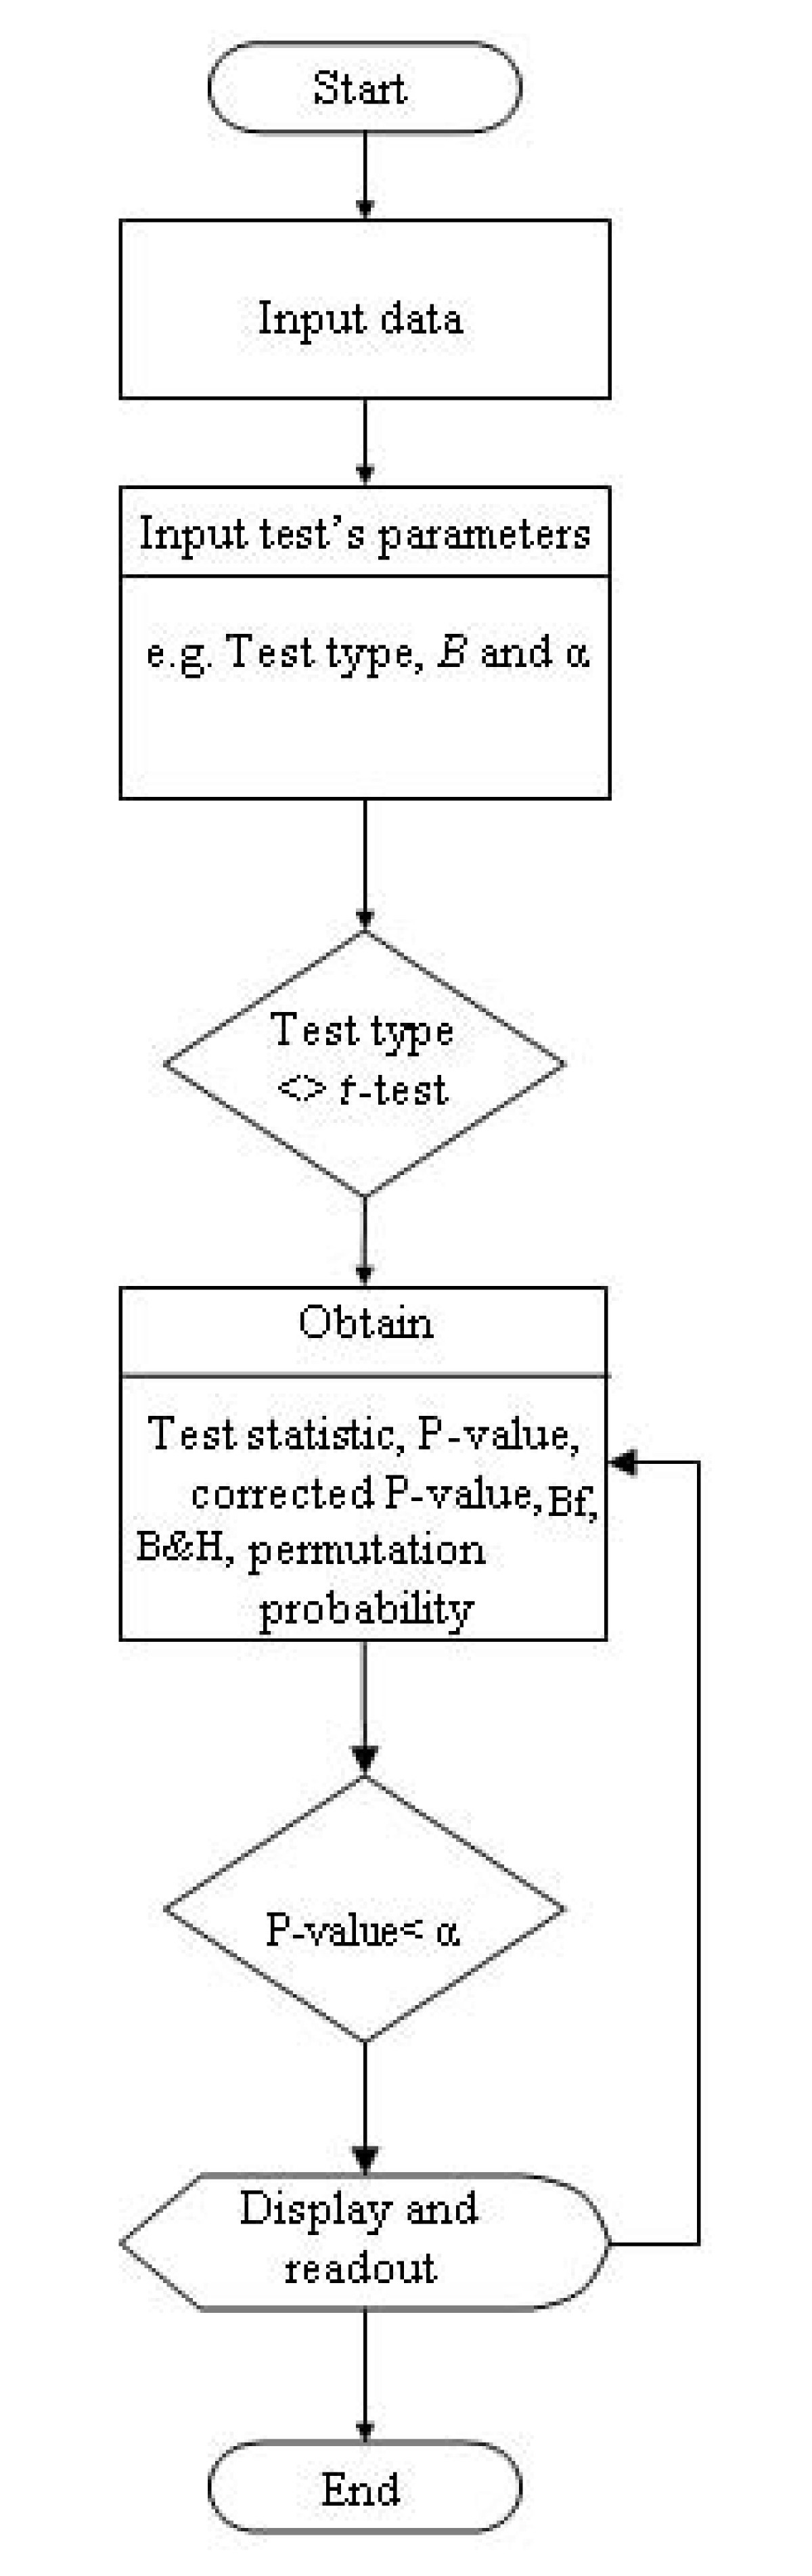 http://static-content.springer.com/image/art%3A10.1186%2F1751-0473-3-15/MediaObjects/13029_2008_Article_32_Fig2_HTML.jpg